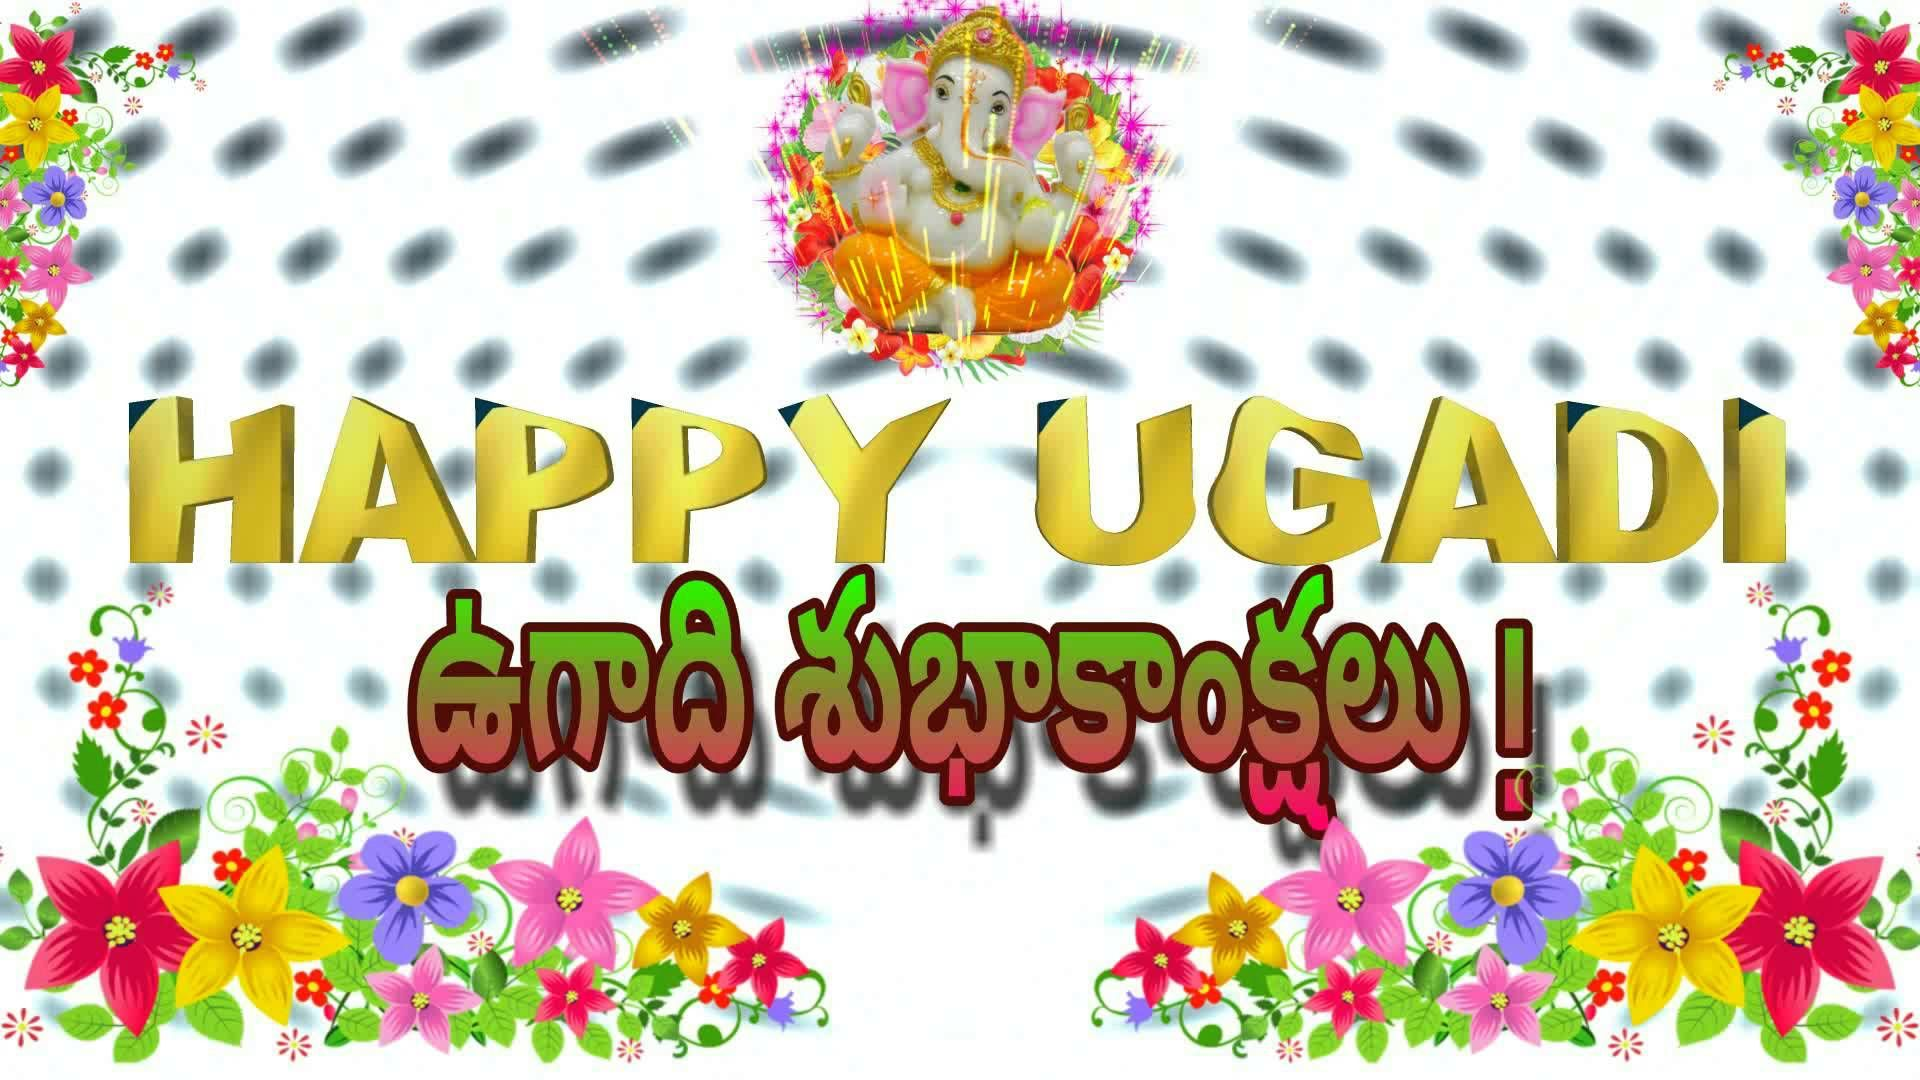 Happy ugadi 2016 ugadi animated greetings ugadi whatsapp videos happy ugadi 2016 ugadi animated greetings ugadi whatsapp videos ugadi ugadi 2017 greetings telugu new year greetings pinterest telugu kristyandbryce Images